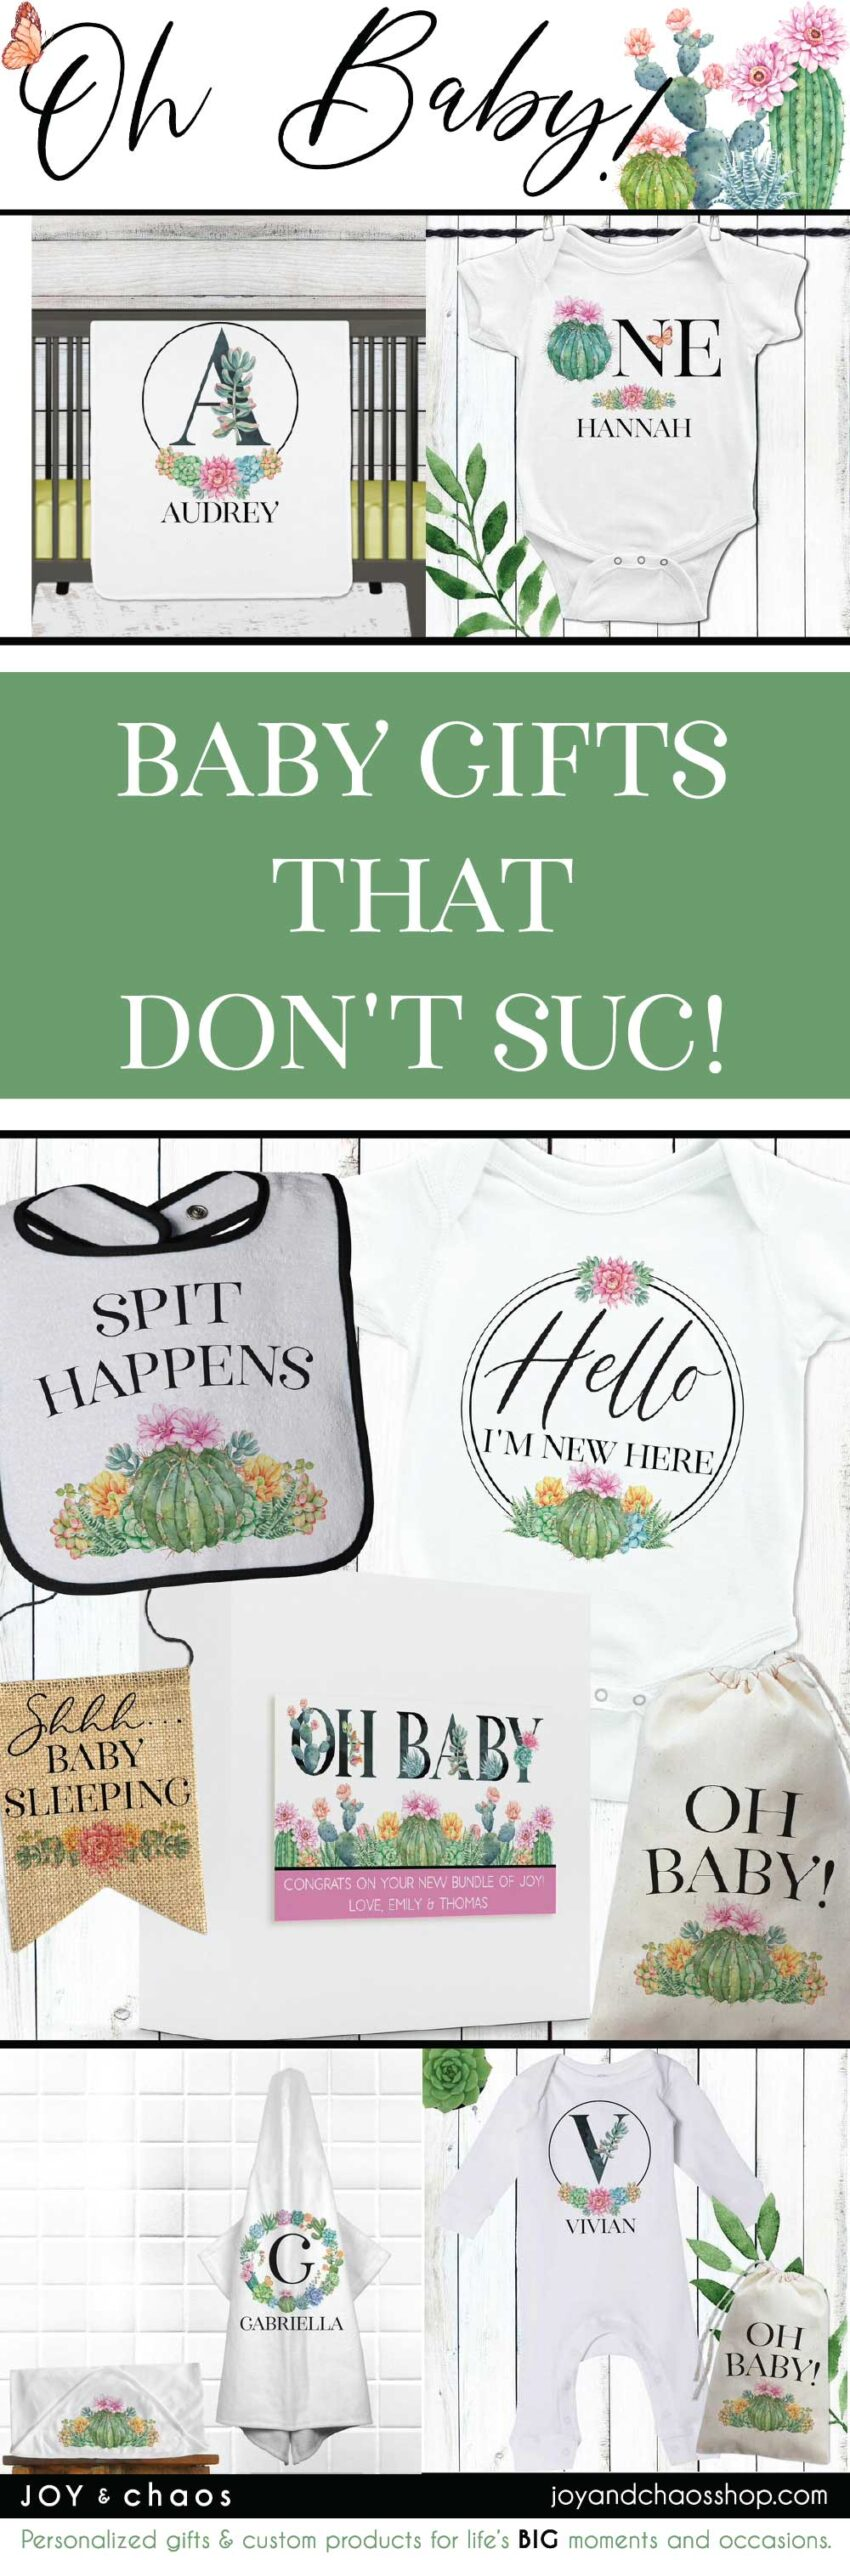 Personalized Baby Gifts for Floral Cactus Succulent Baby Shower or Nursery